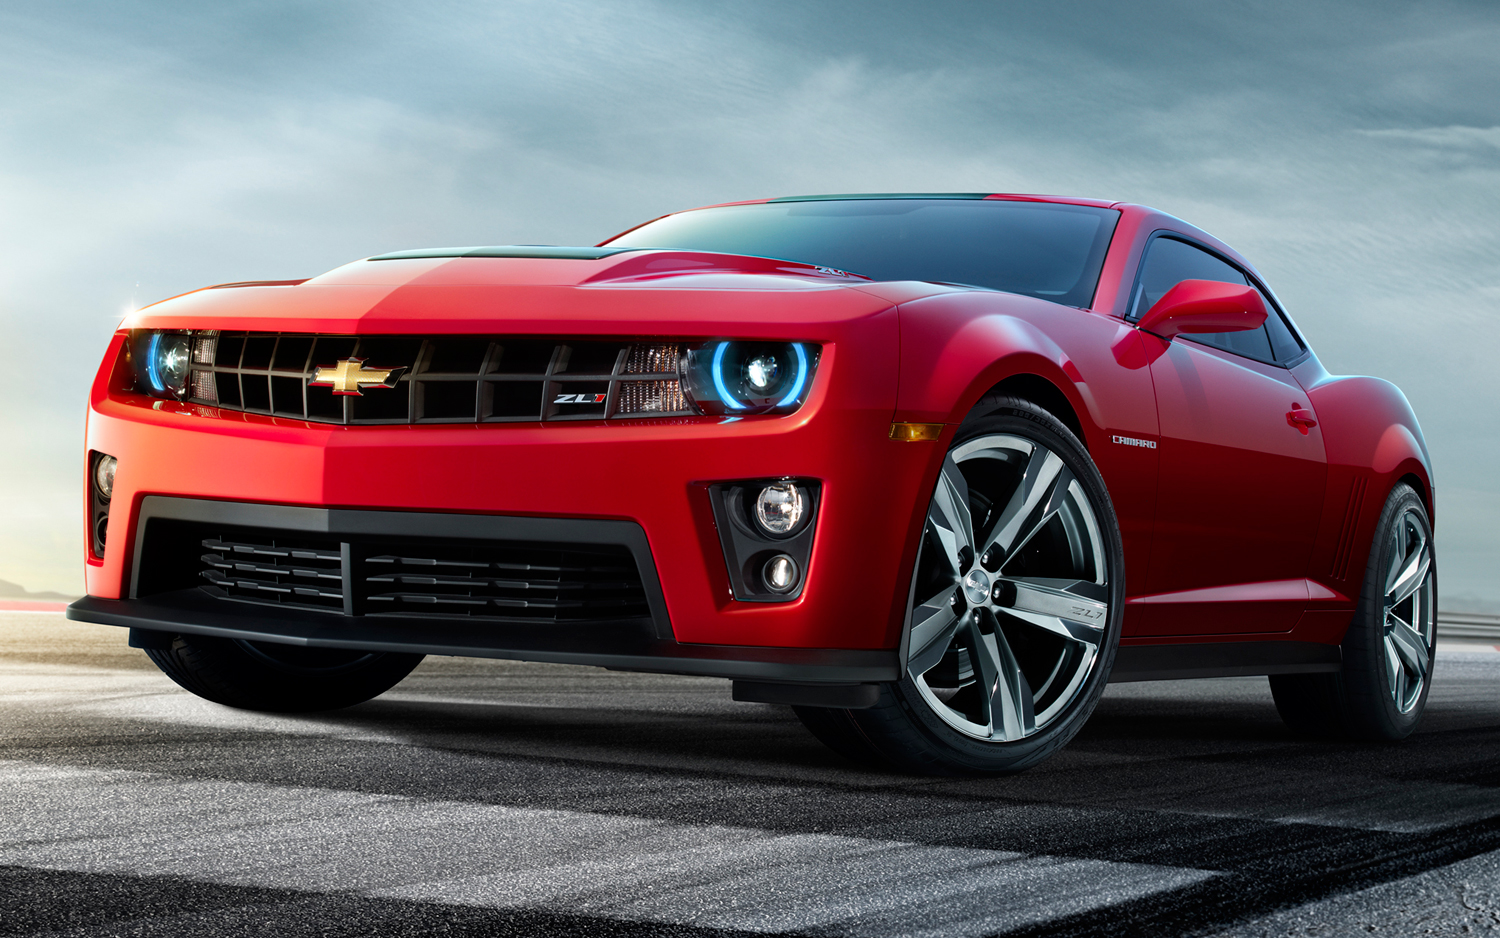 2012 Chevrolet Camaro Zl1 0 60 In 3 9 Secs For 54 995 Motortrend